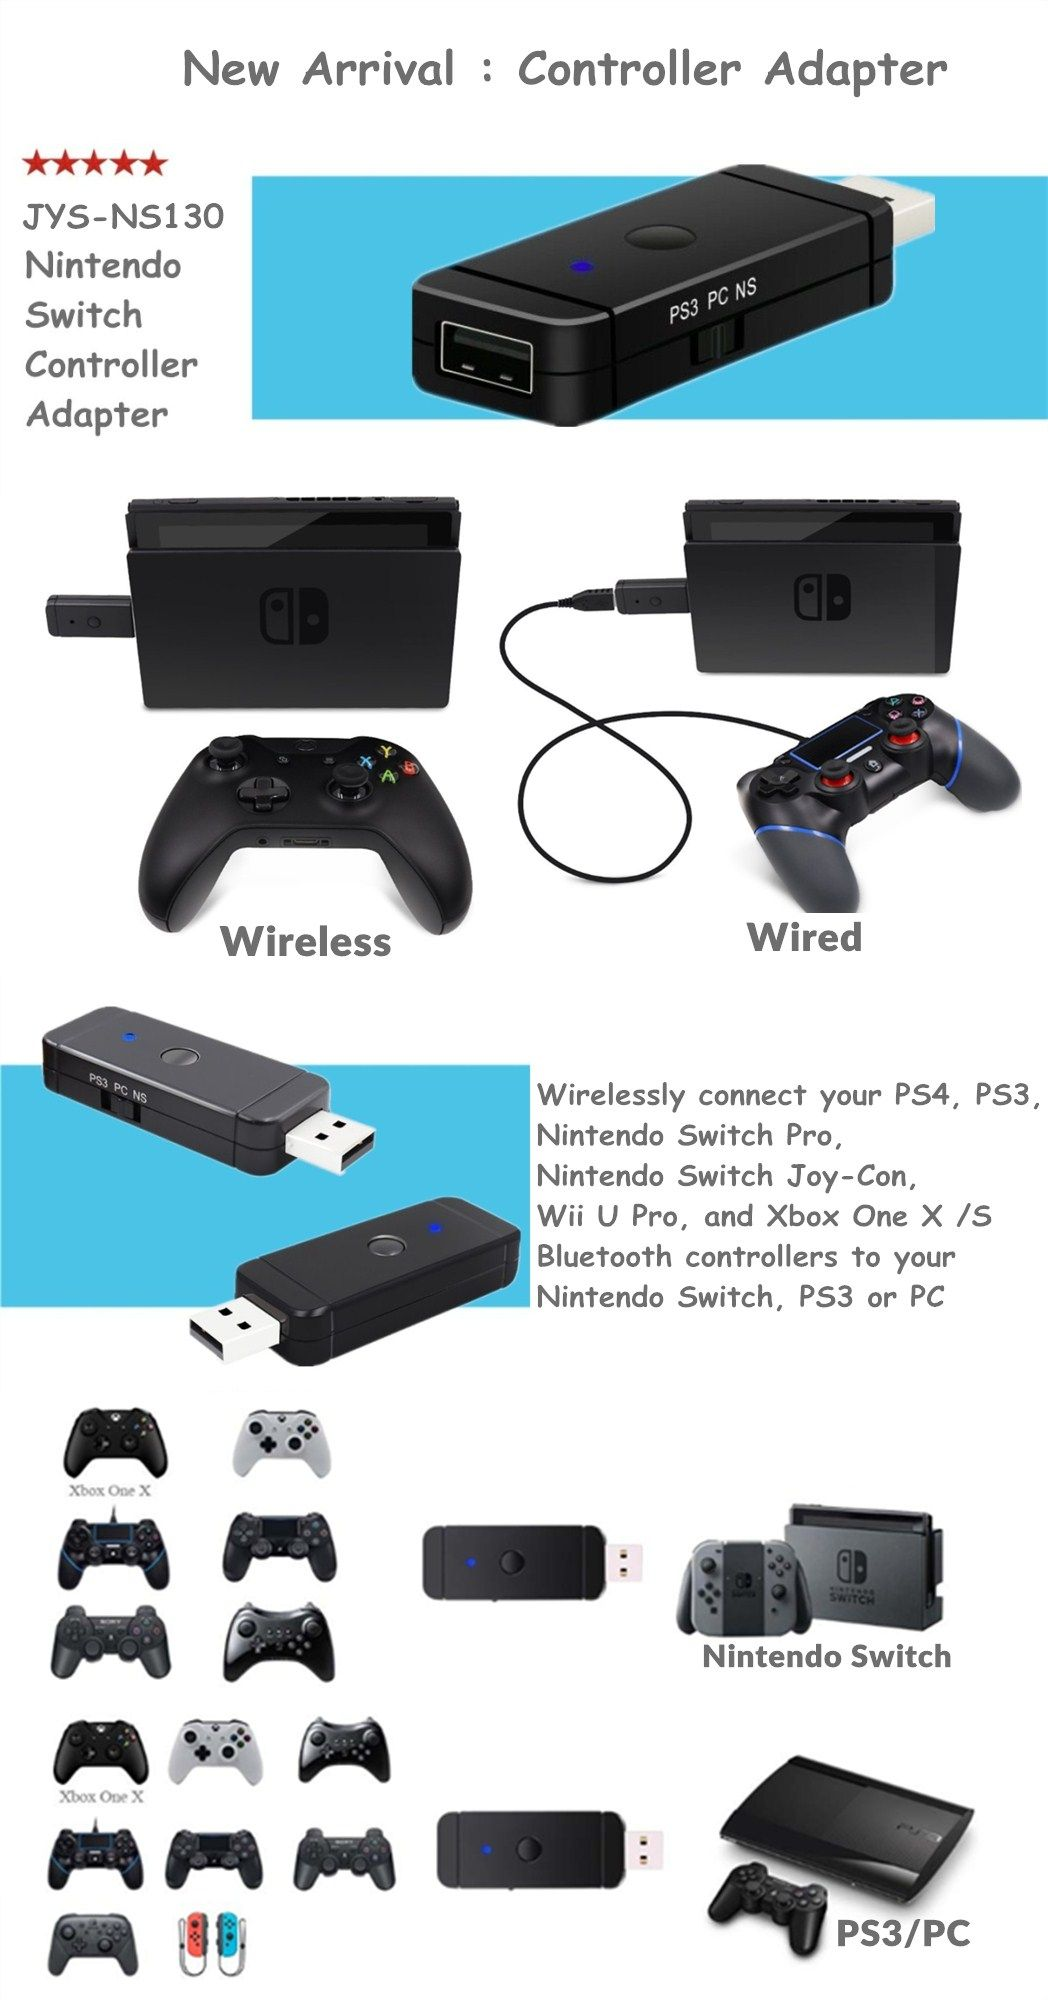 small resolution of universal wireless and wired controller adapter help players to use ps3 ps4 xbox 360 xbox one wii u controllers on nintendo switch ps3 and pc